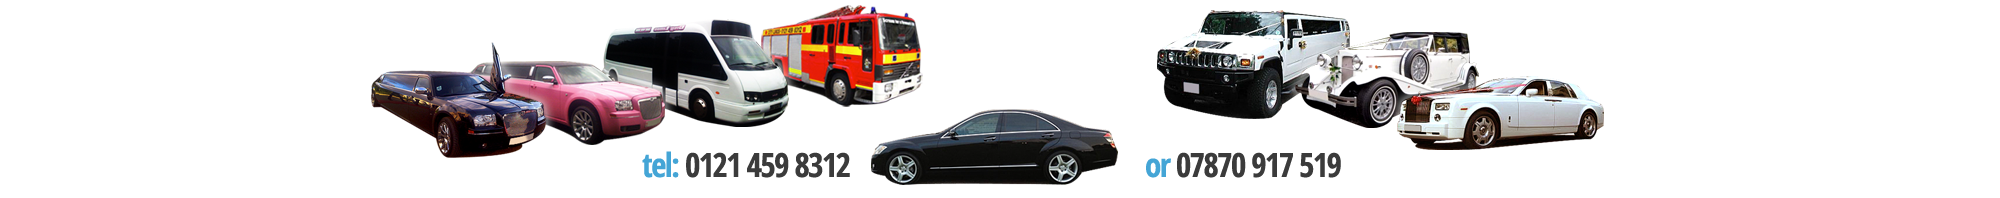 limo hire gallery